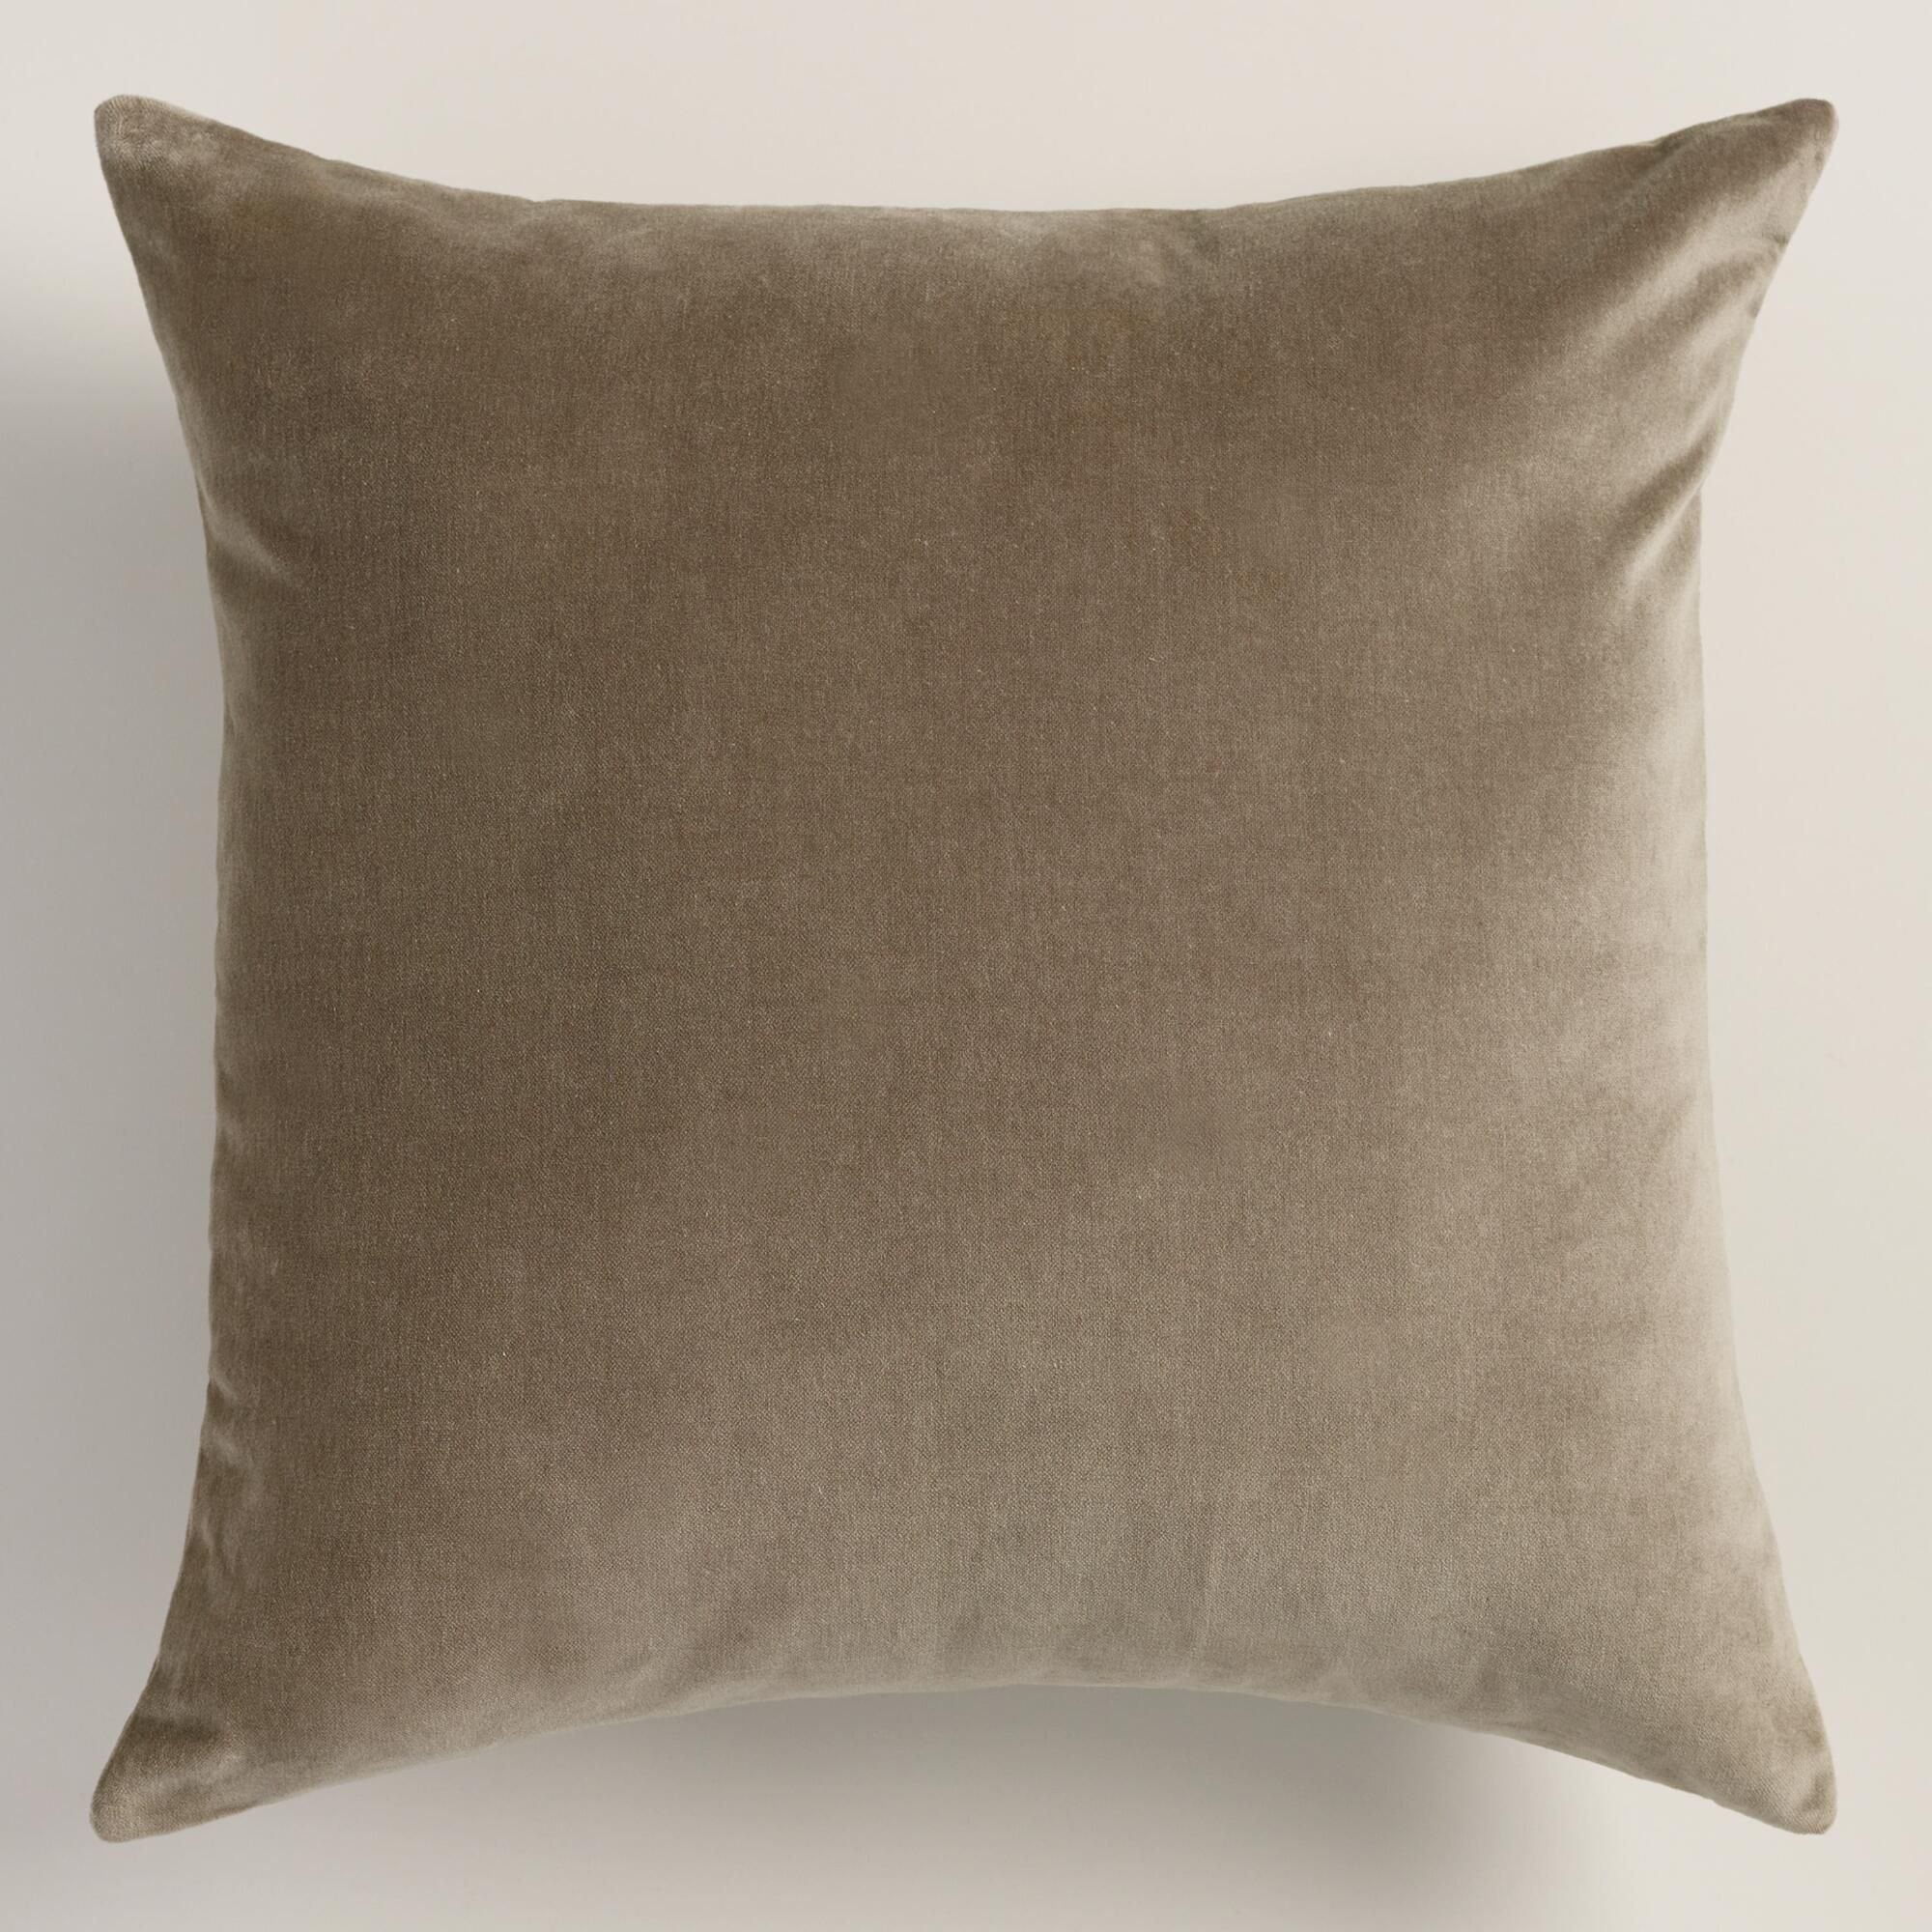 Walnut Taupe Velvet Throw Pillow Throw Pillows Velvet Throw Pillows Velvet Throw